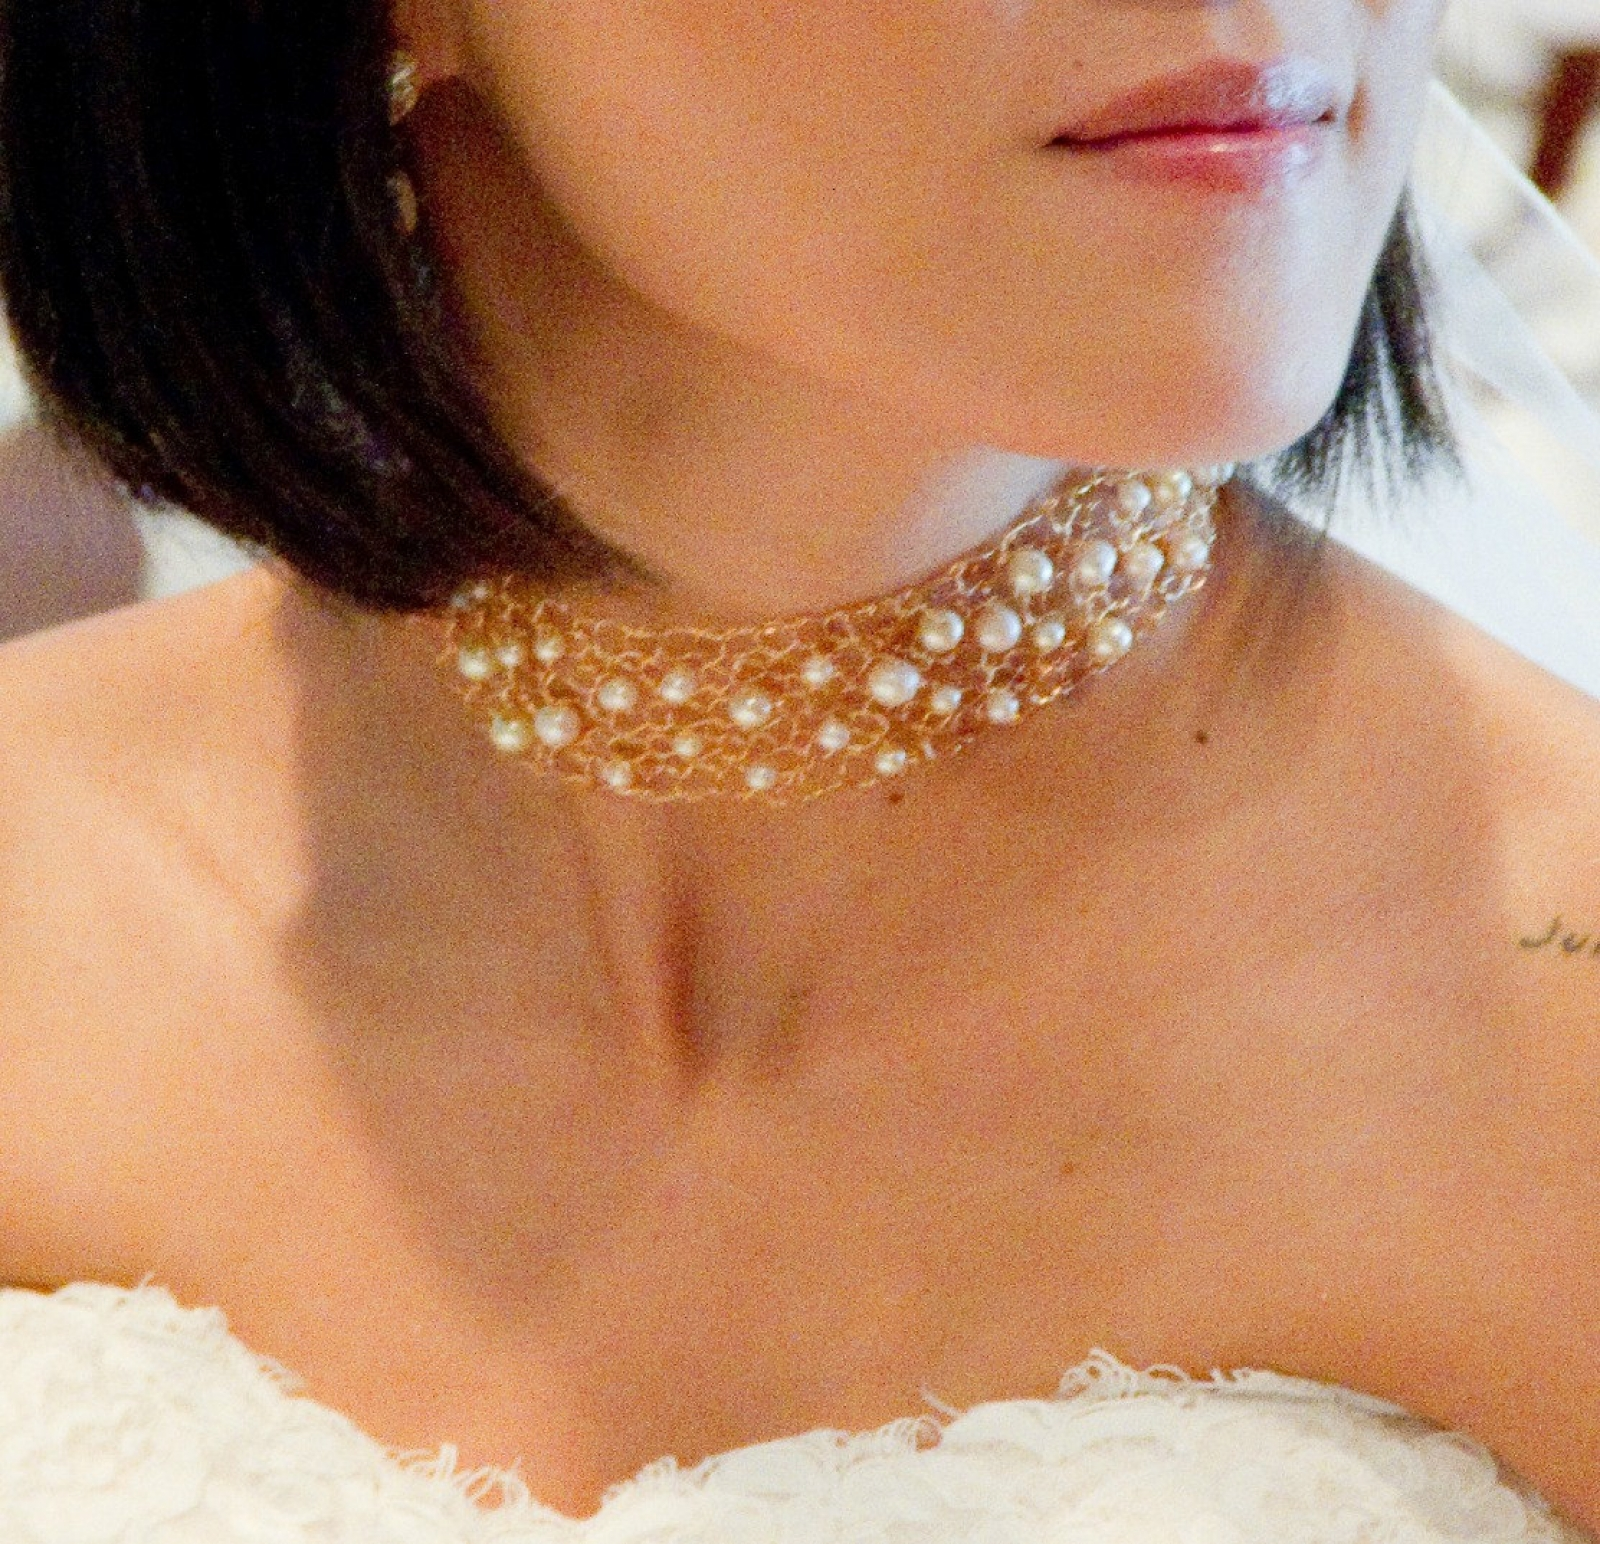 Wedding Bridal Necklace Beautiful Gold Choker Delicate Lace